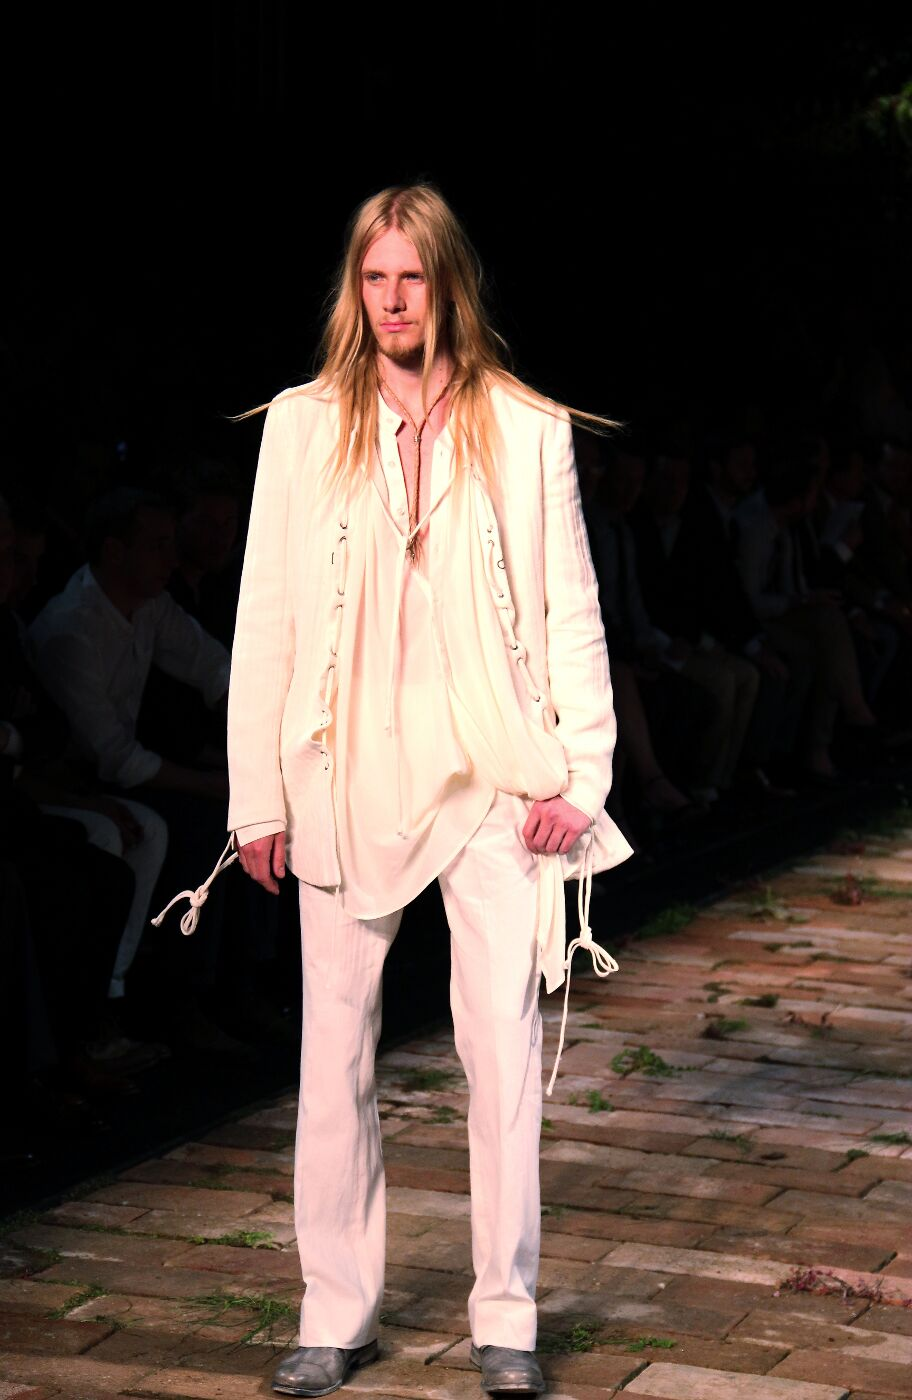 john-varvatos-ss-spring-summer-2012-milano-fashion-week-john-varvatos